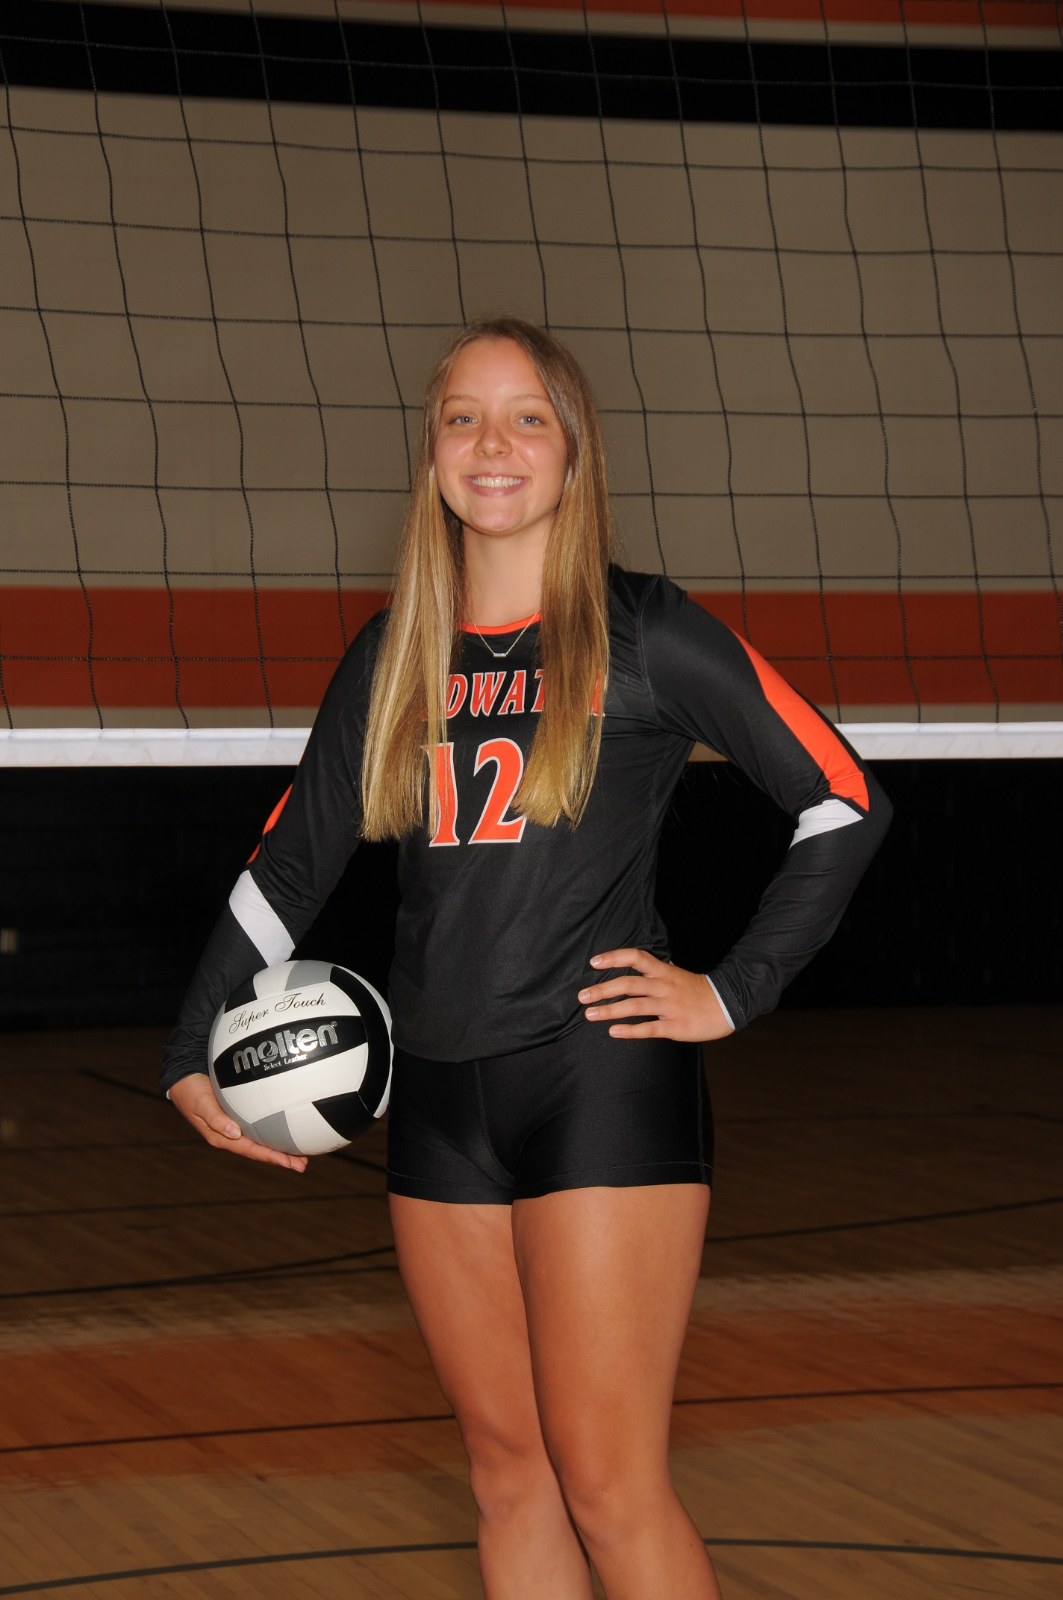 Aubrey Koester is this weeks The Peoples Bank Company and Lefeld Industrial & Welding Supplies Athlete of the Week